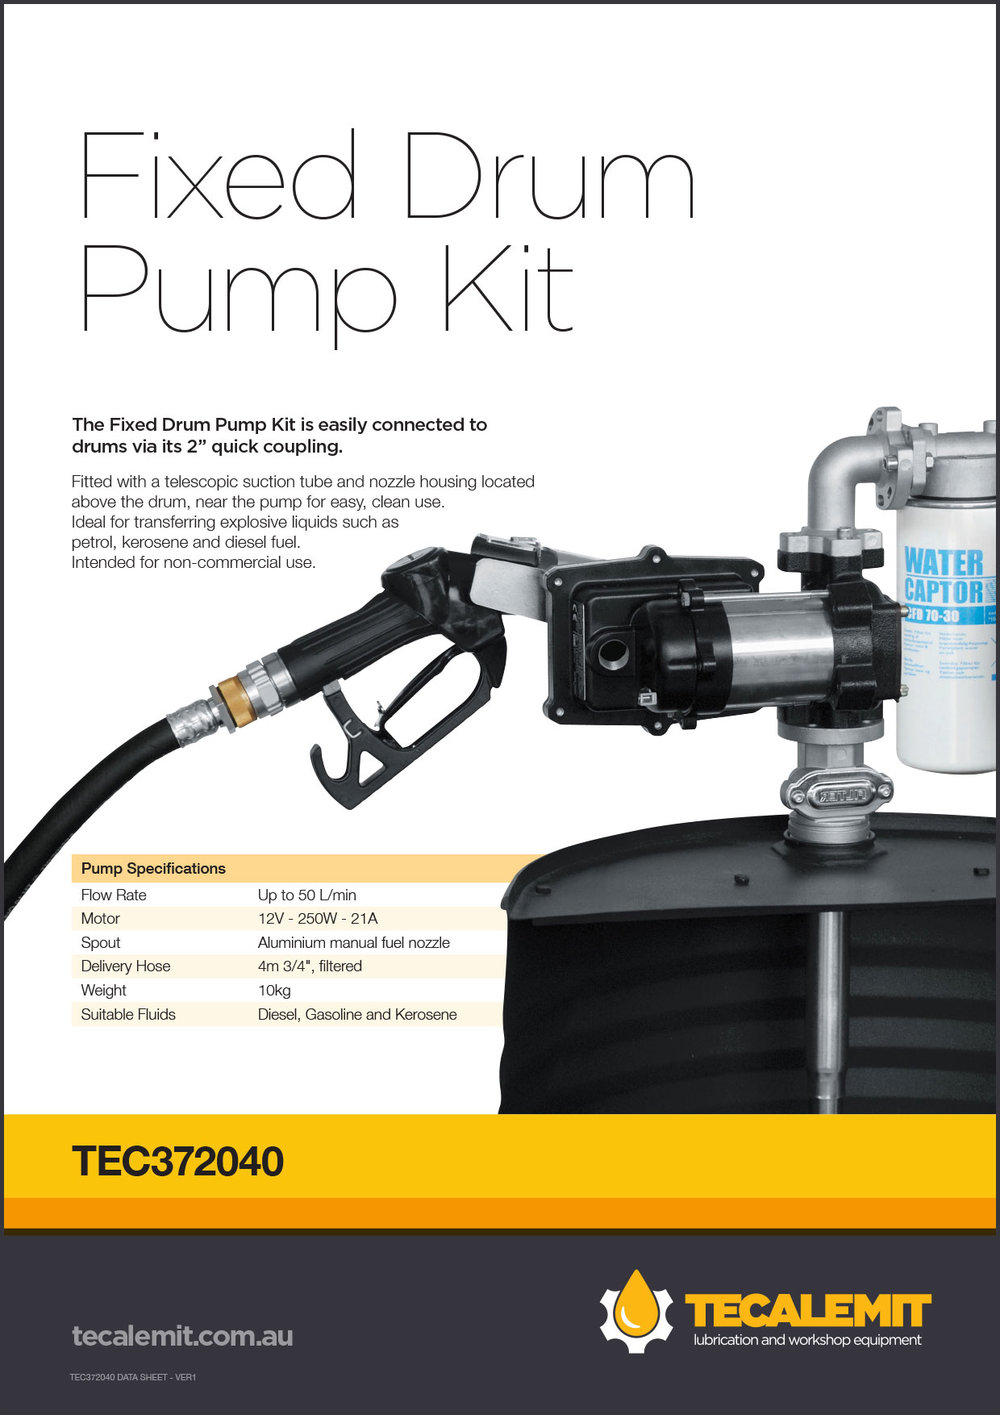 TEC372040 Product Info